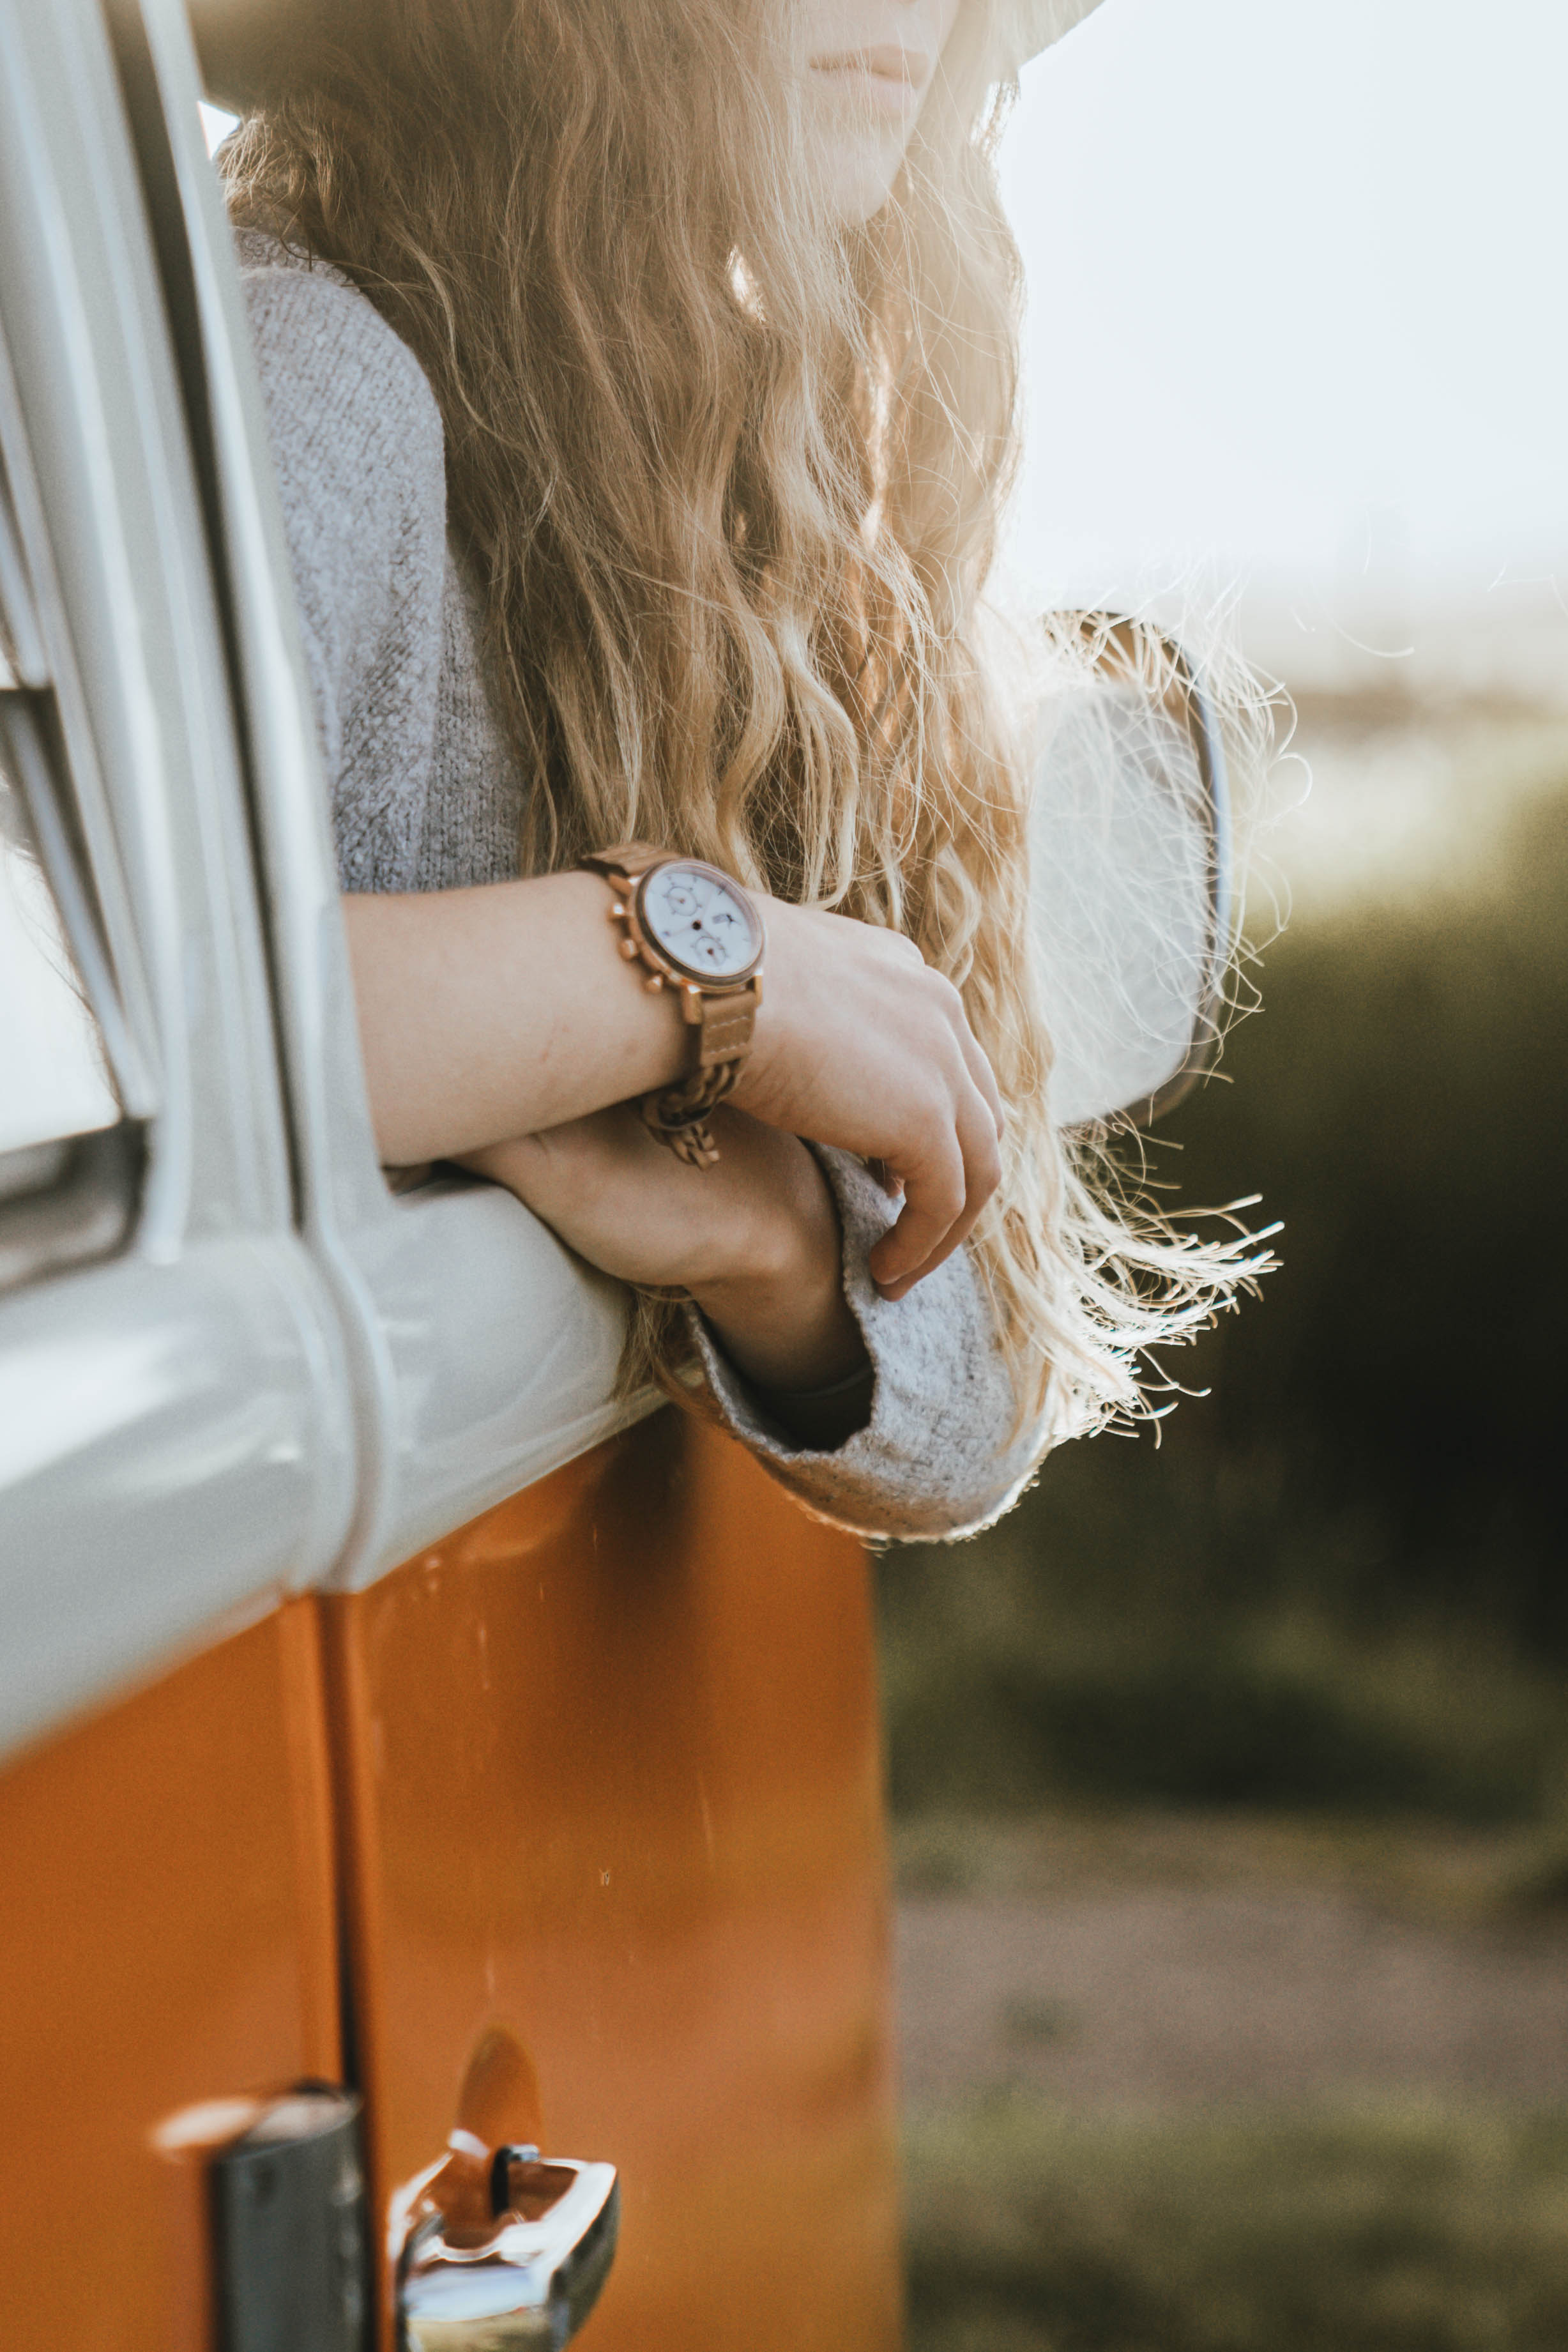 Girl leaning out of a orange van while wearing a wrist watch by Timber&Jack